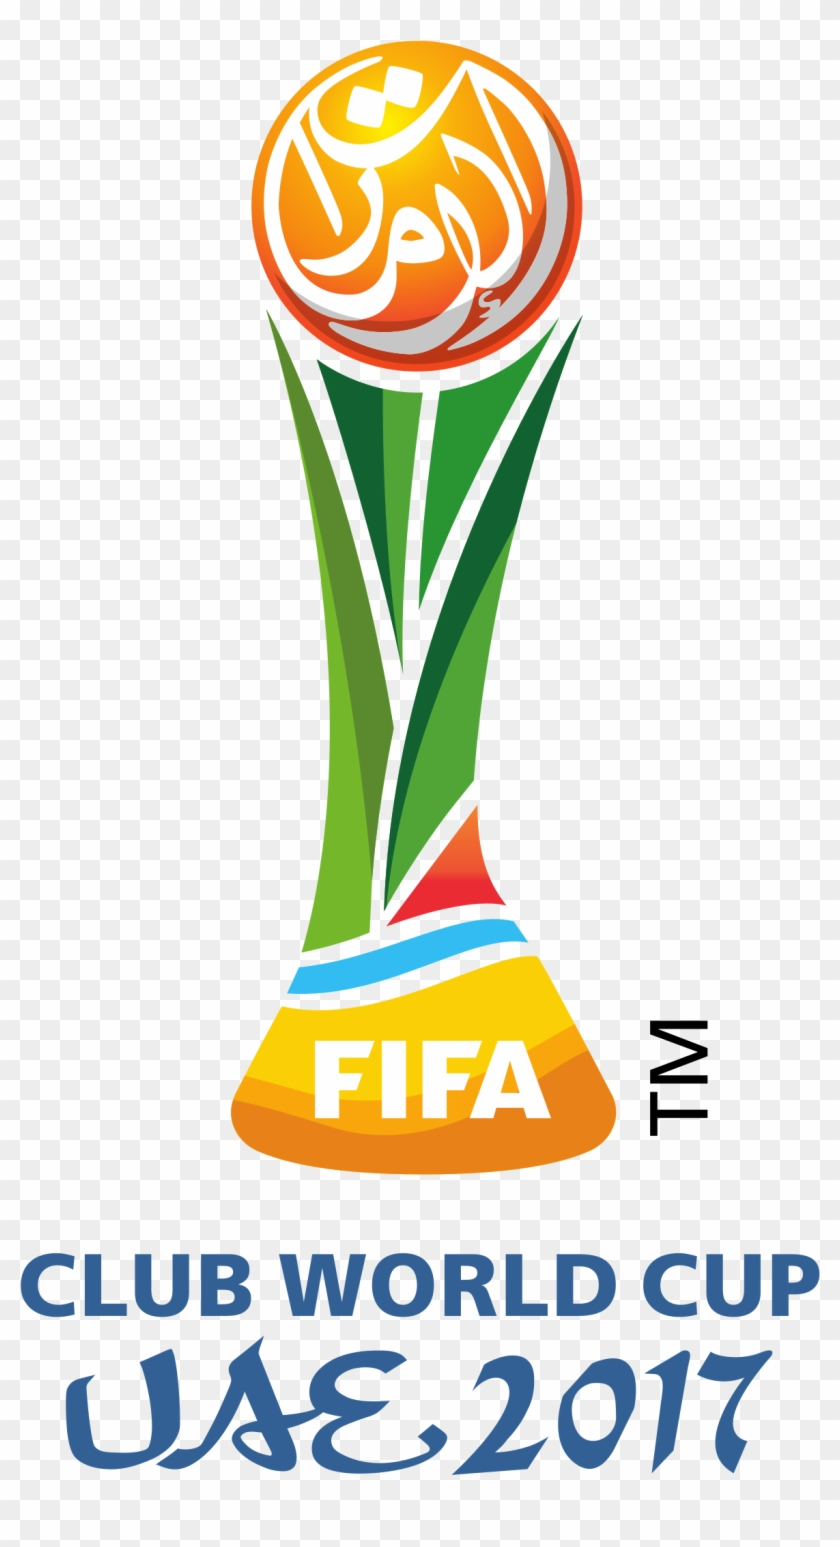 Logo Fifa World Cup 2018 Png Pluspng.